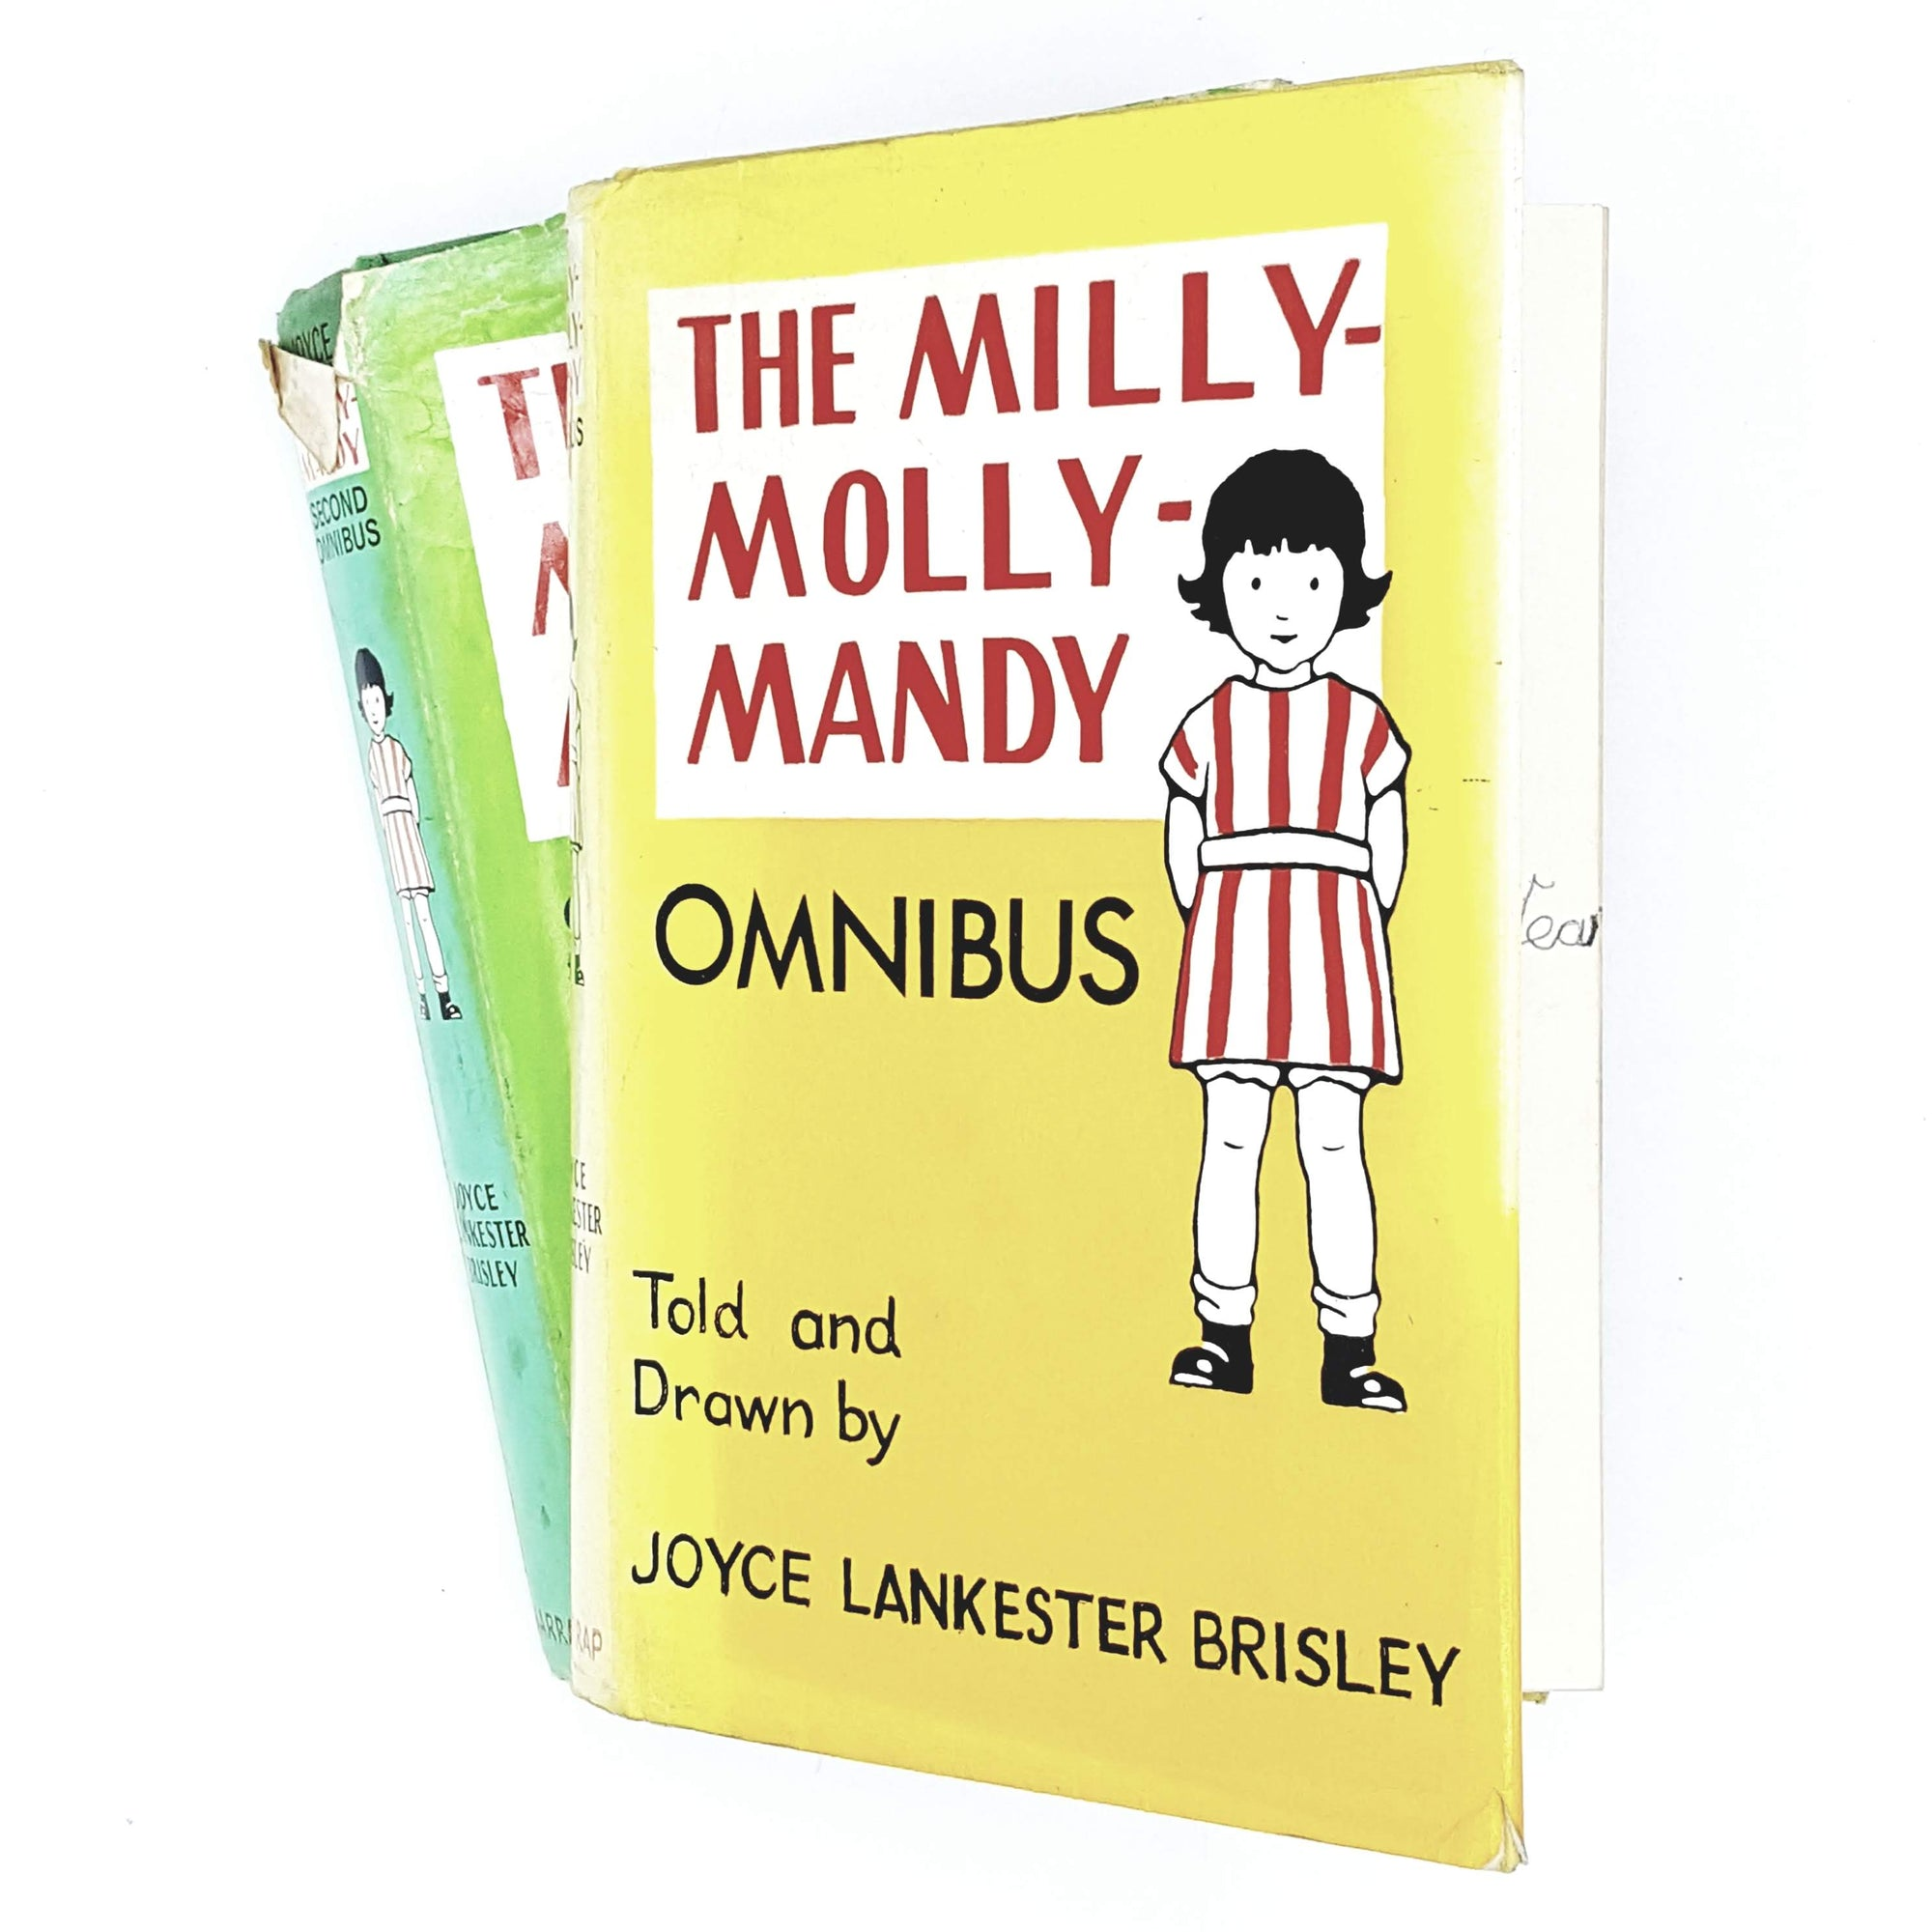 collection-kids-yellow-green-milly-molly-mandy-vintage-book-country-house-library